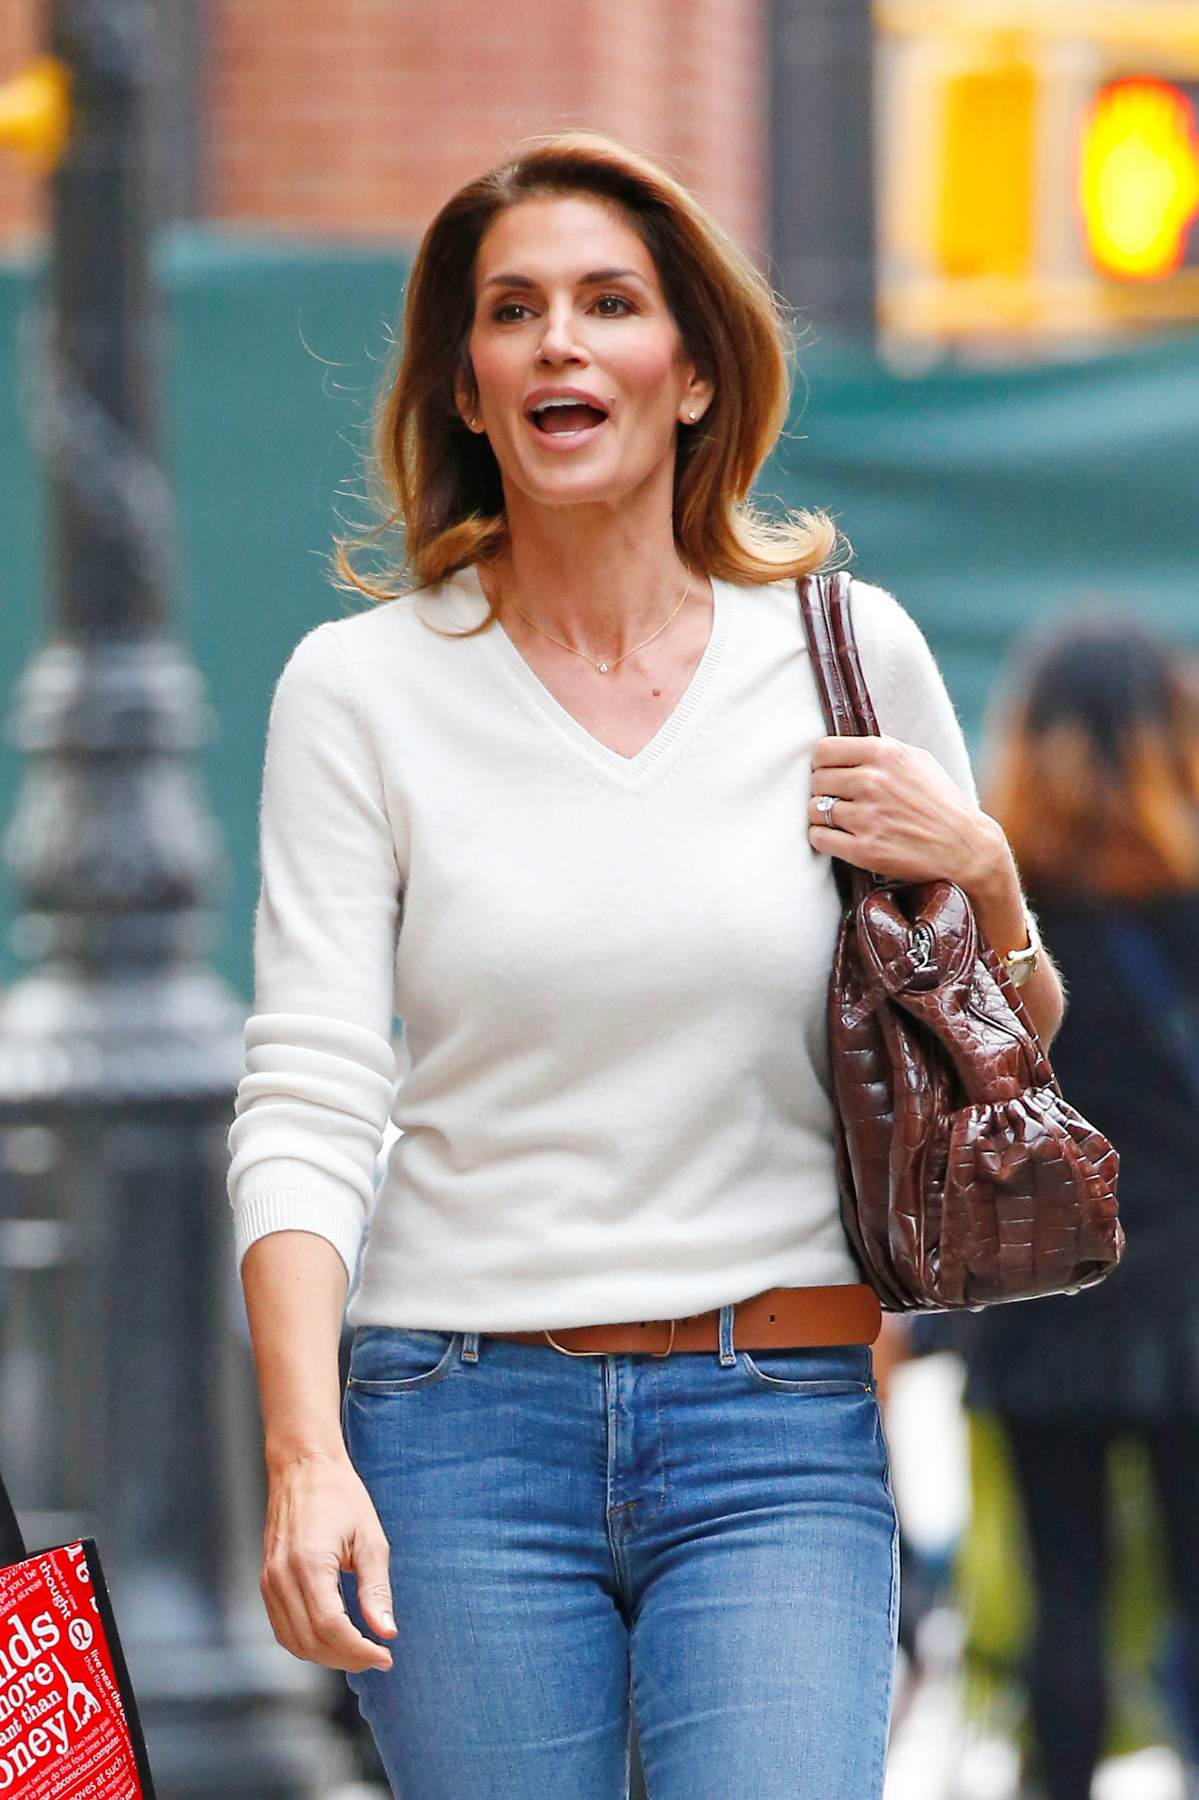 Cindy Crawford In New York City-1